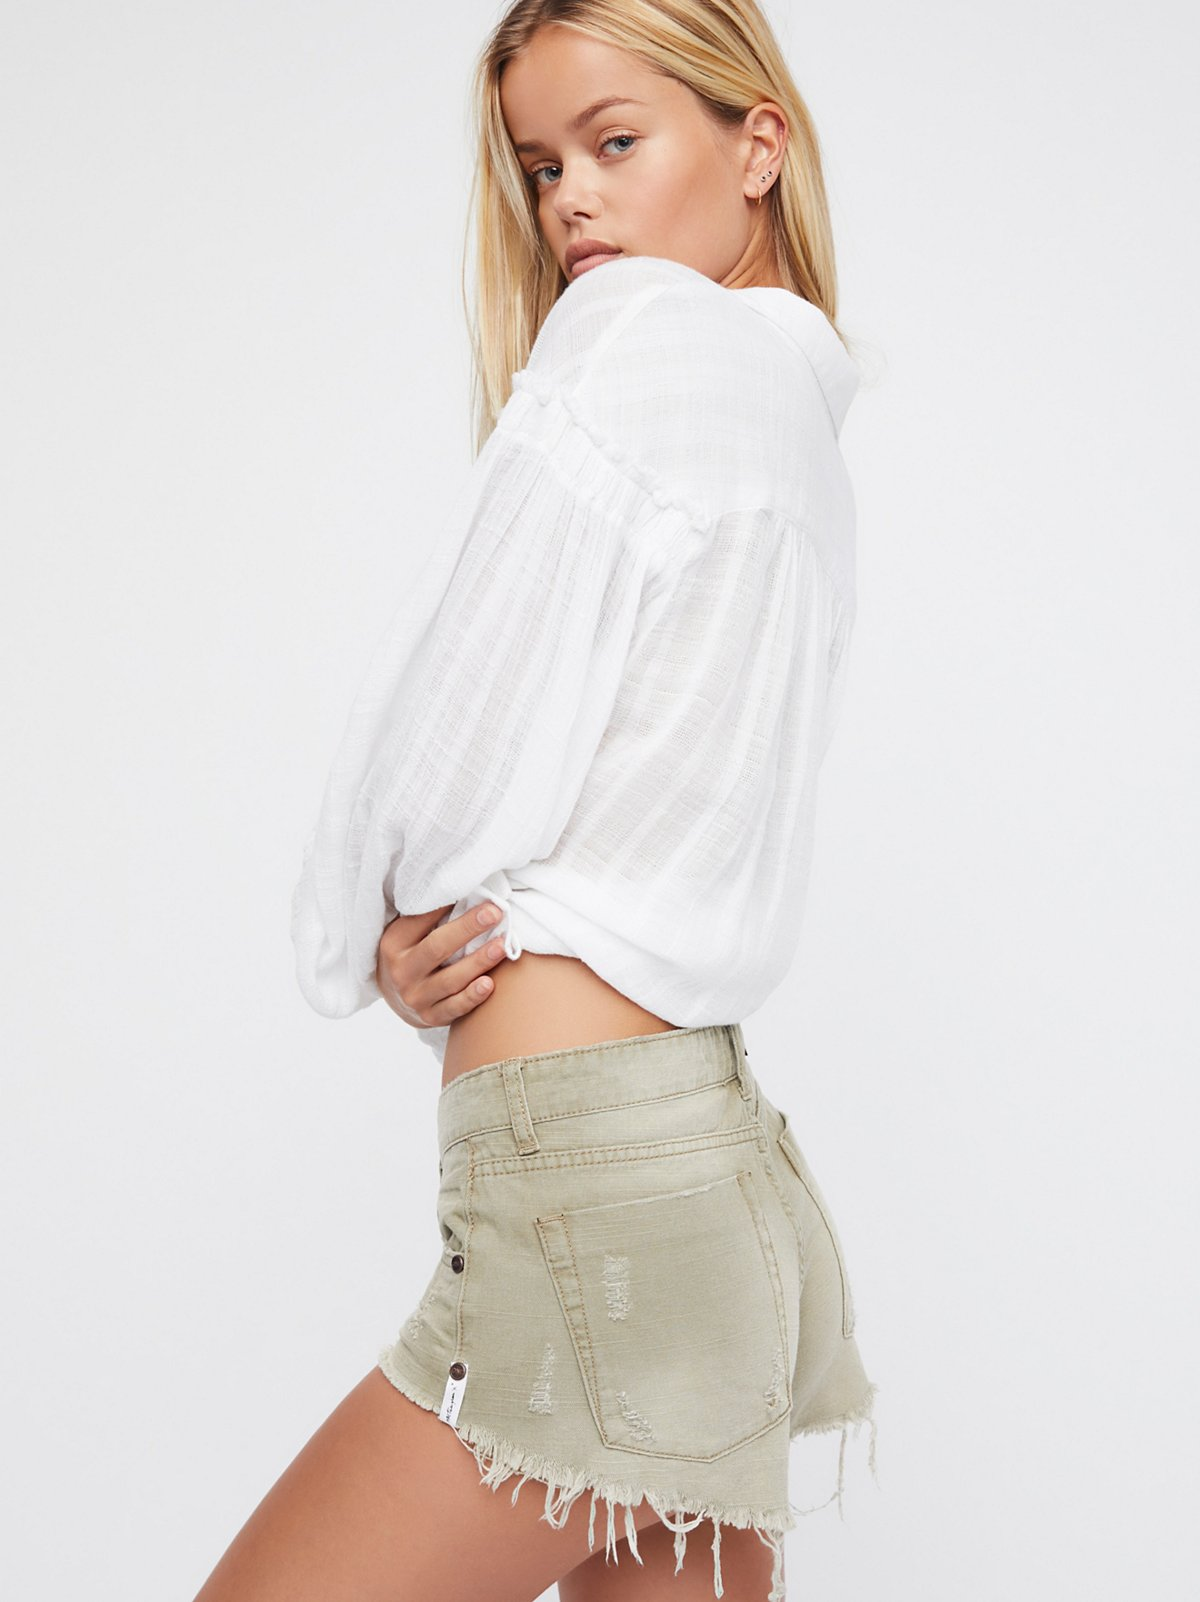 Bonitas Denim Shorts